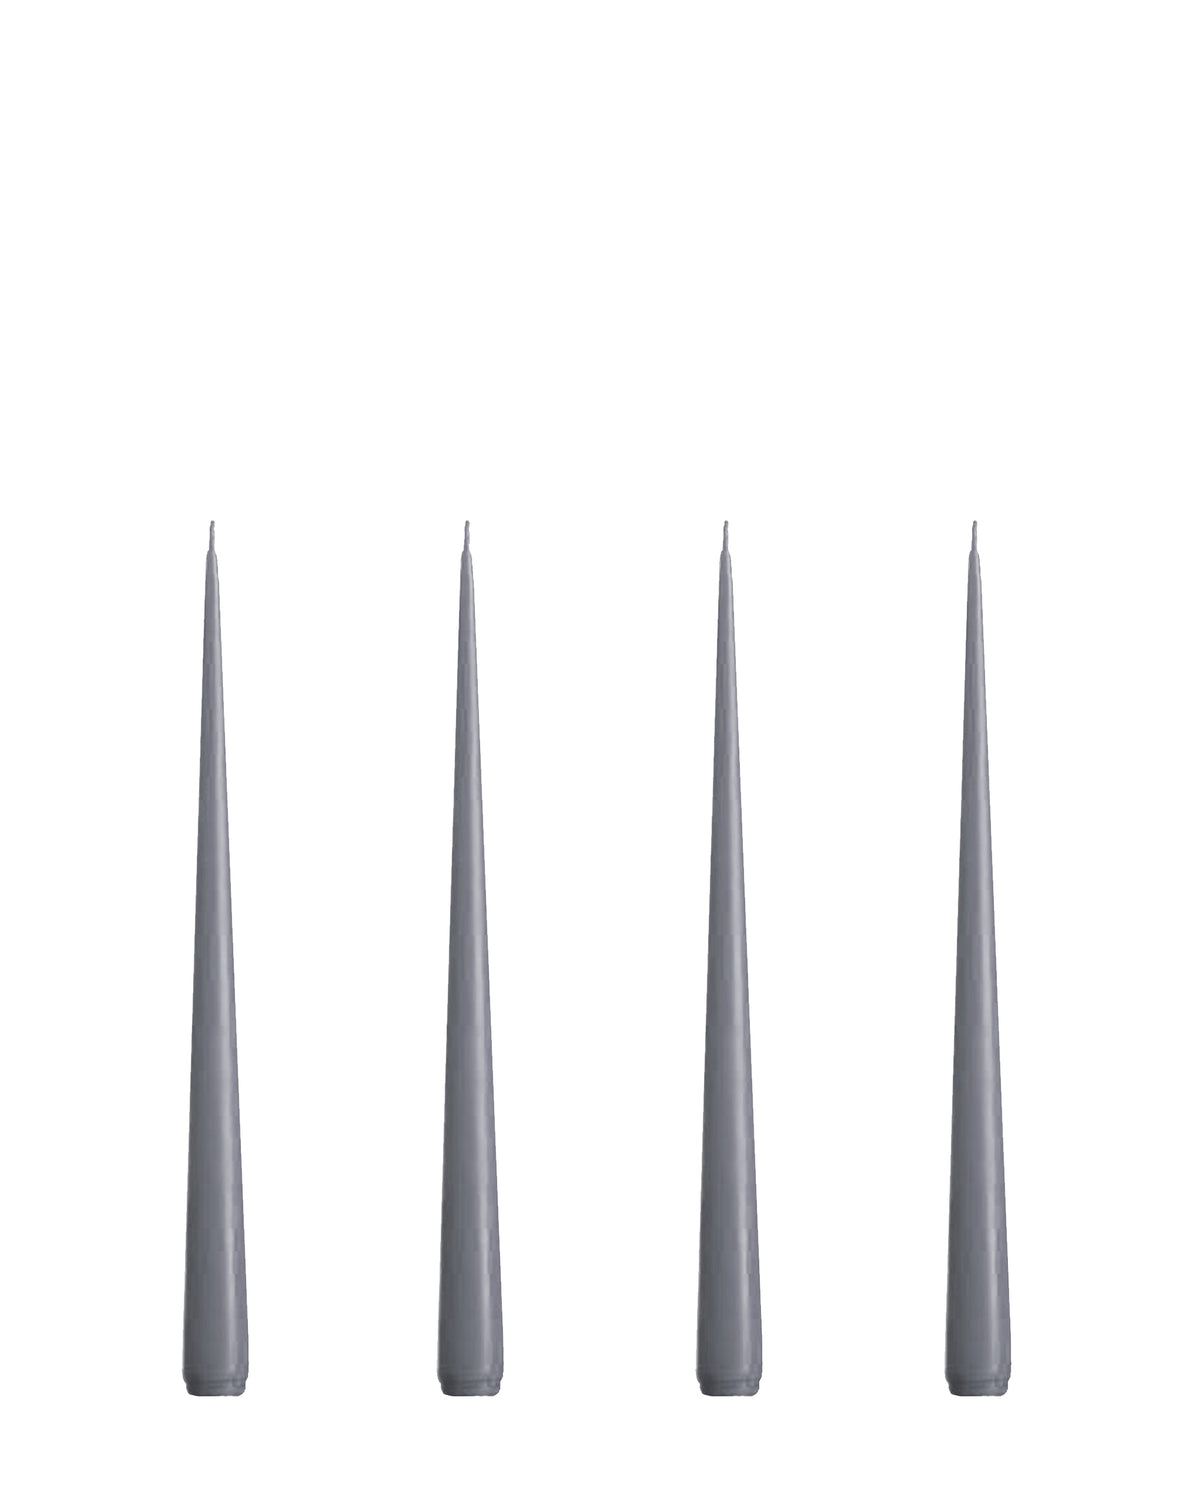 Lacquer Short Taper Candles Set of 4, Charcoal